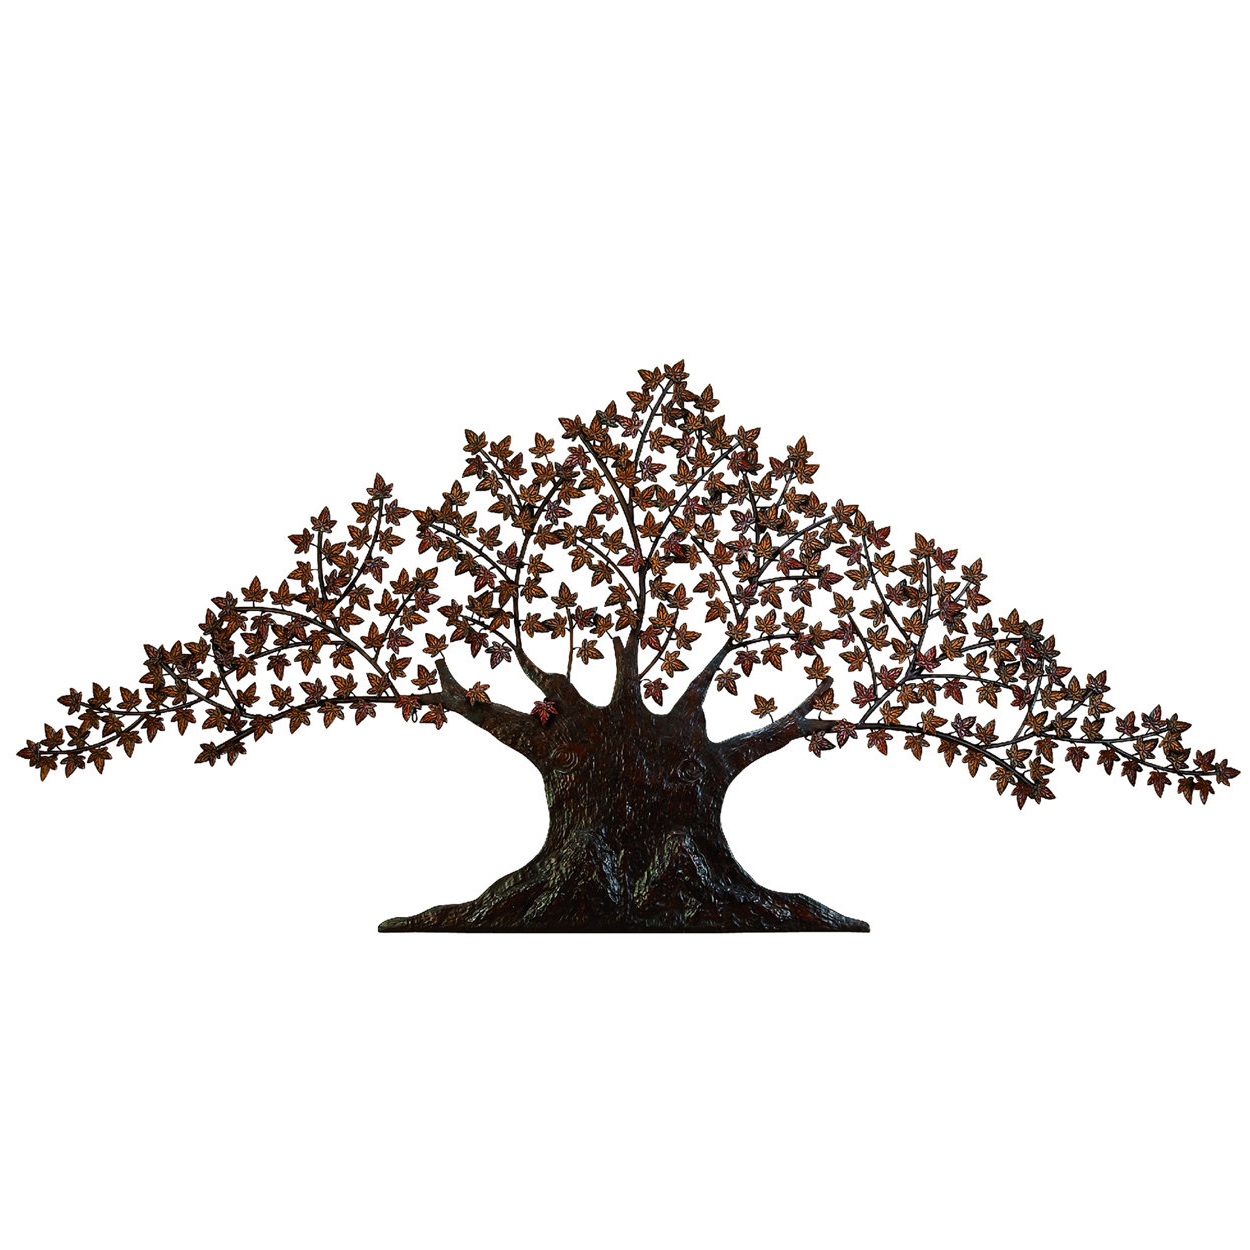 "2019 Wetherden Tree Wall Decor Inside Ec World Imports 92"" Urban Handcrafted Tree Of Life Large Metal Art (View 1 of 20)"